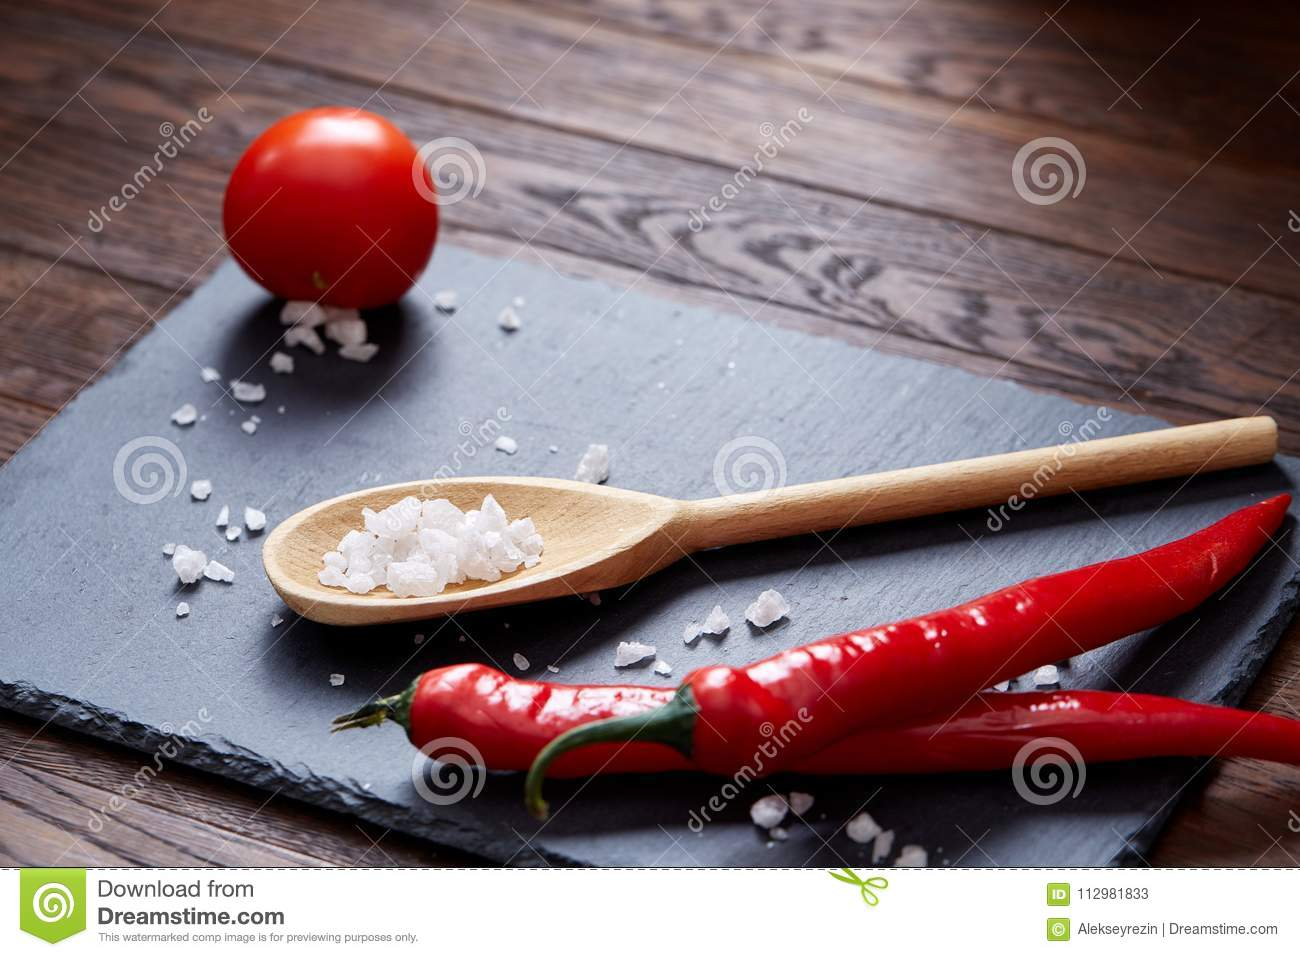 Vegetarian still life with fresh grape tomatoes, pepper and salt in wooden spoon on wooden background, selective focus